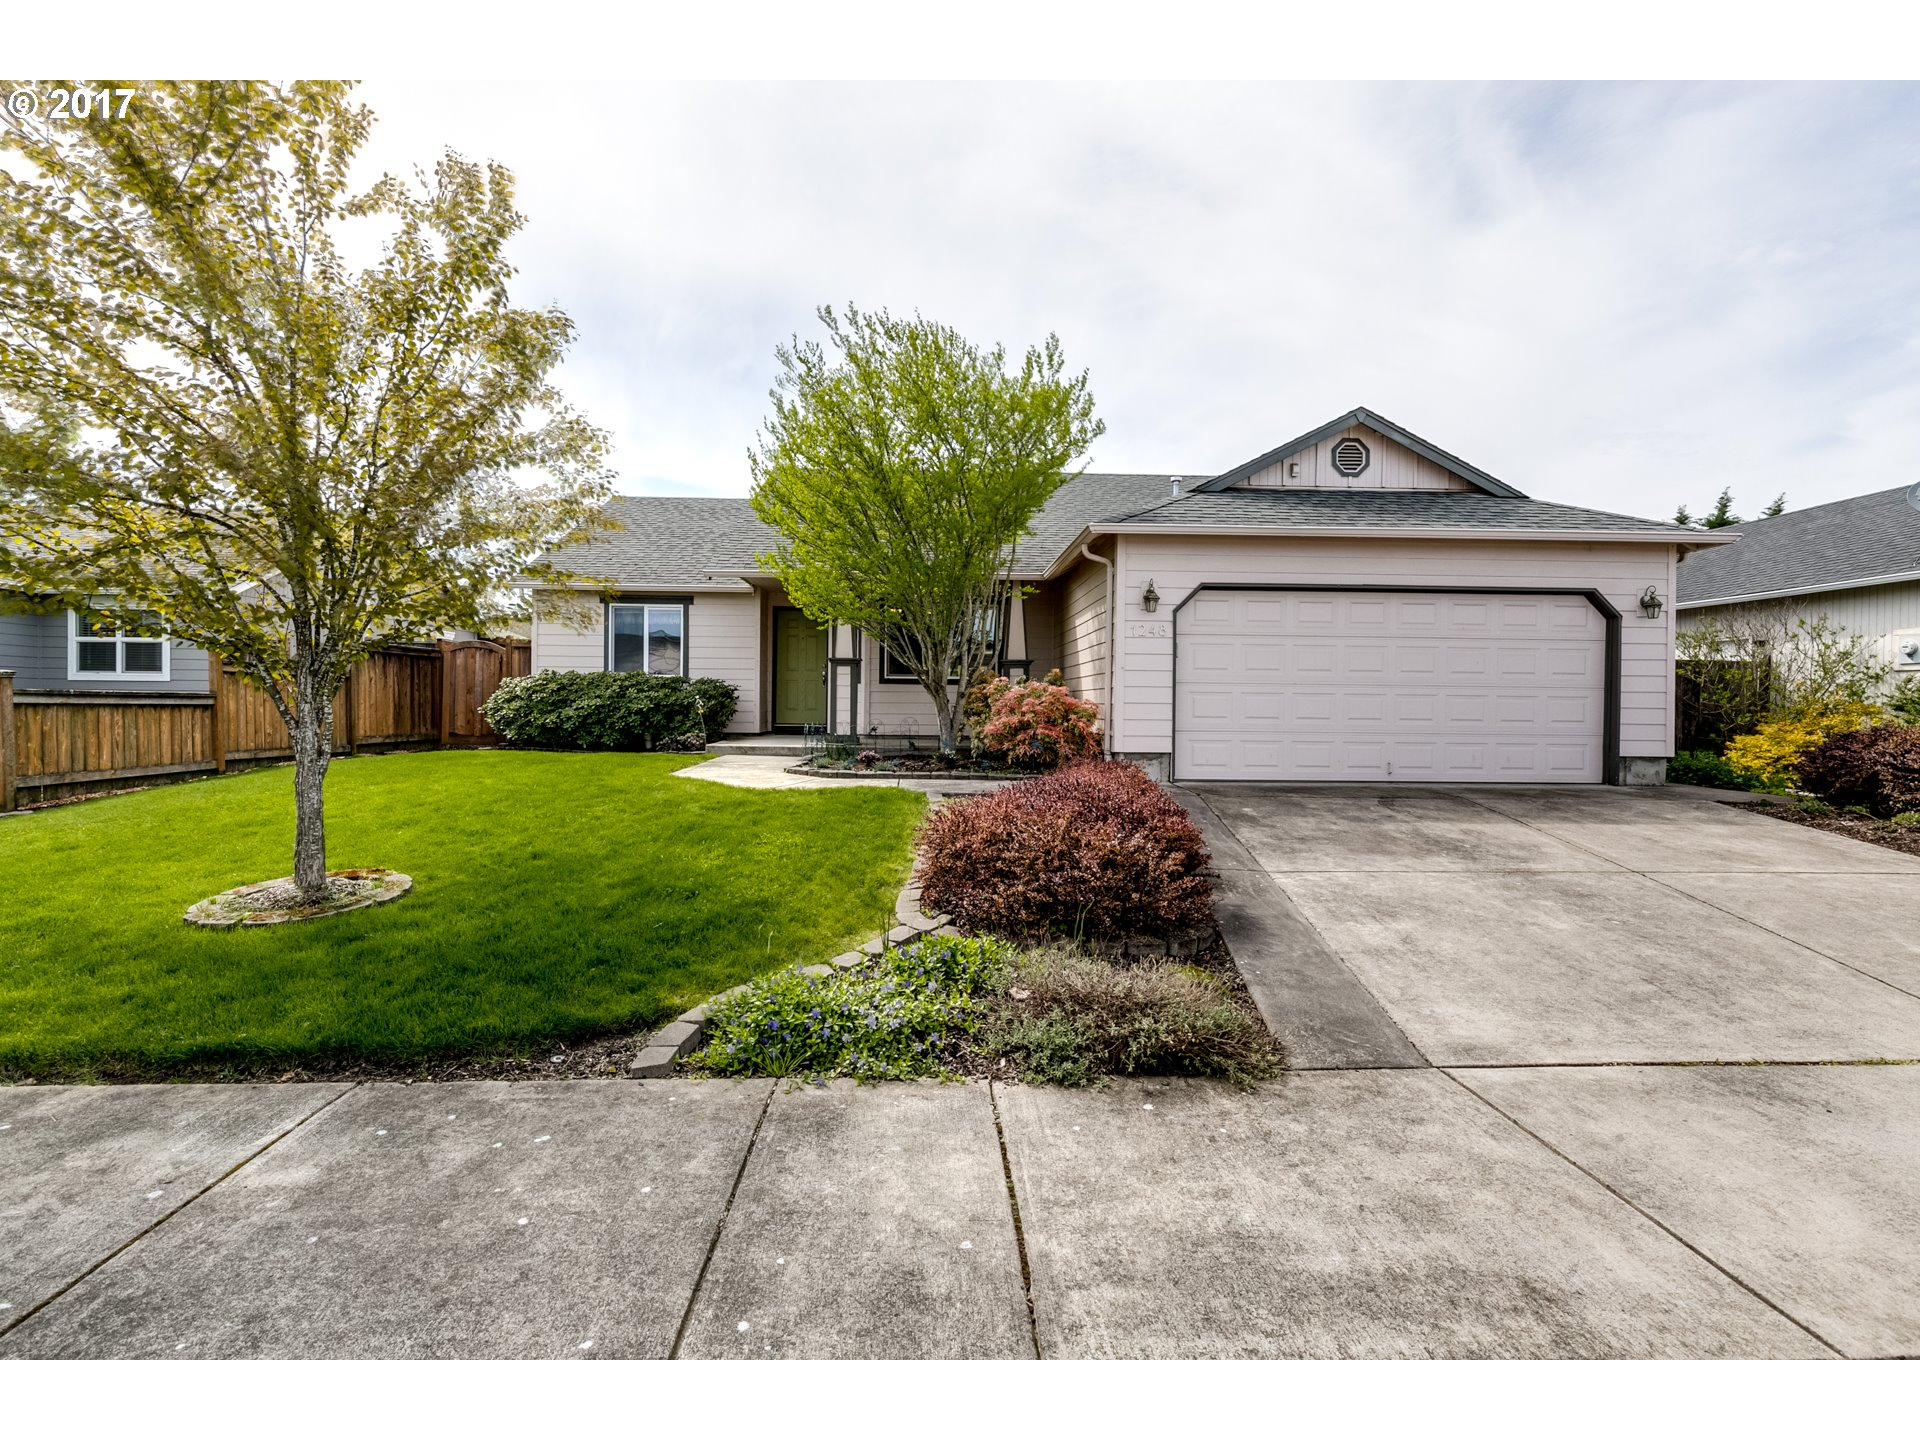 1248 COLTON WAY, Eugene OR 97402